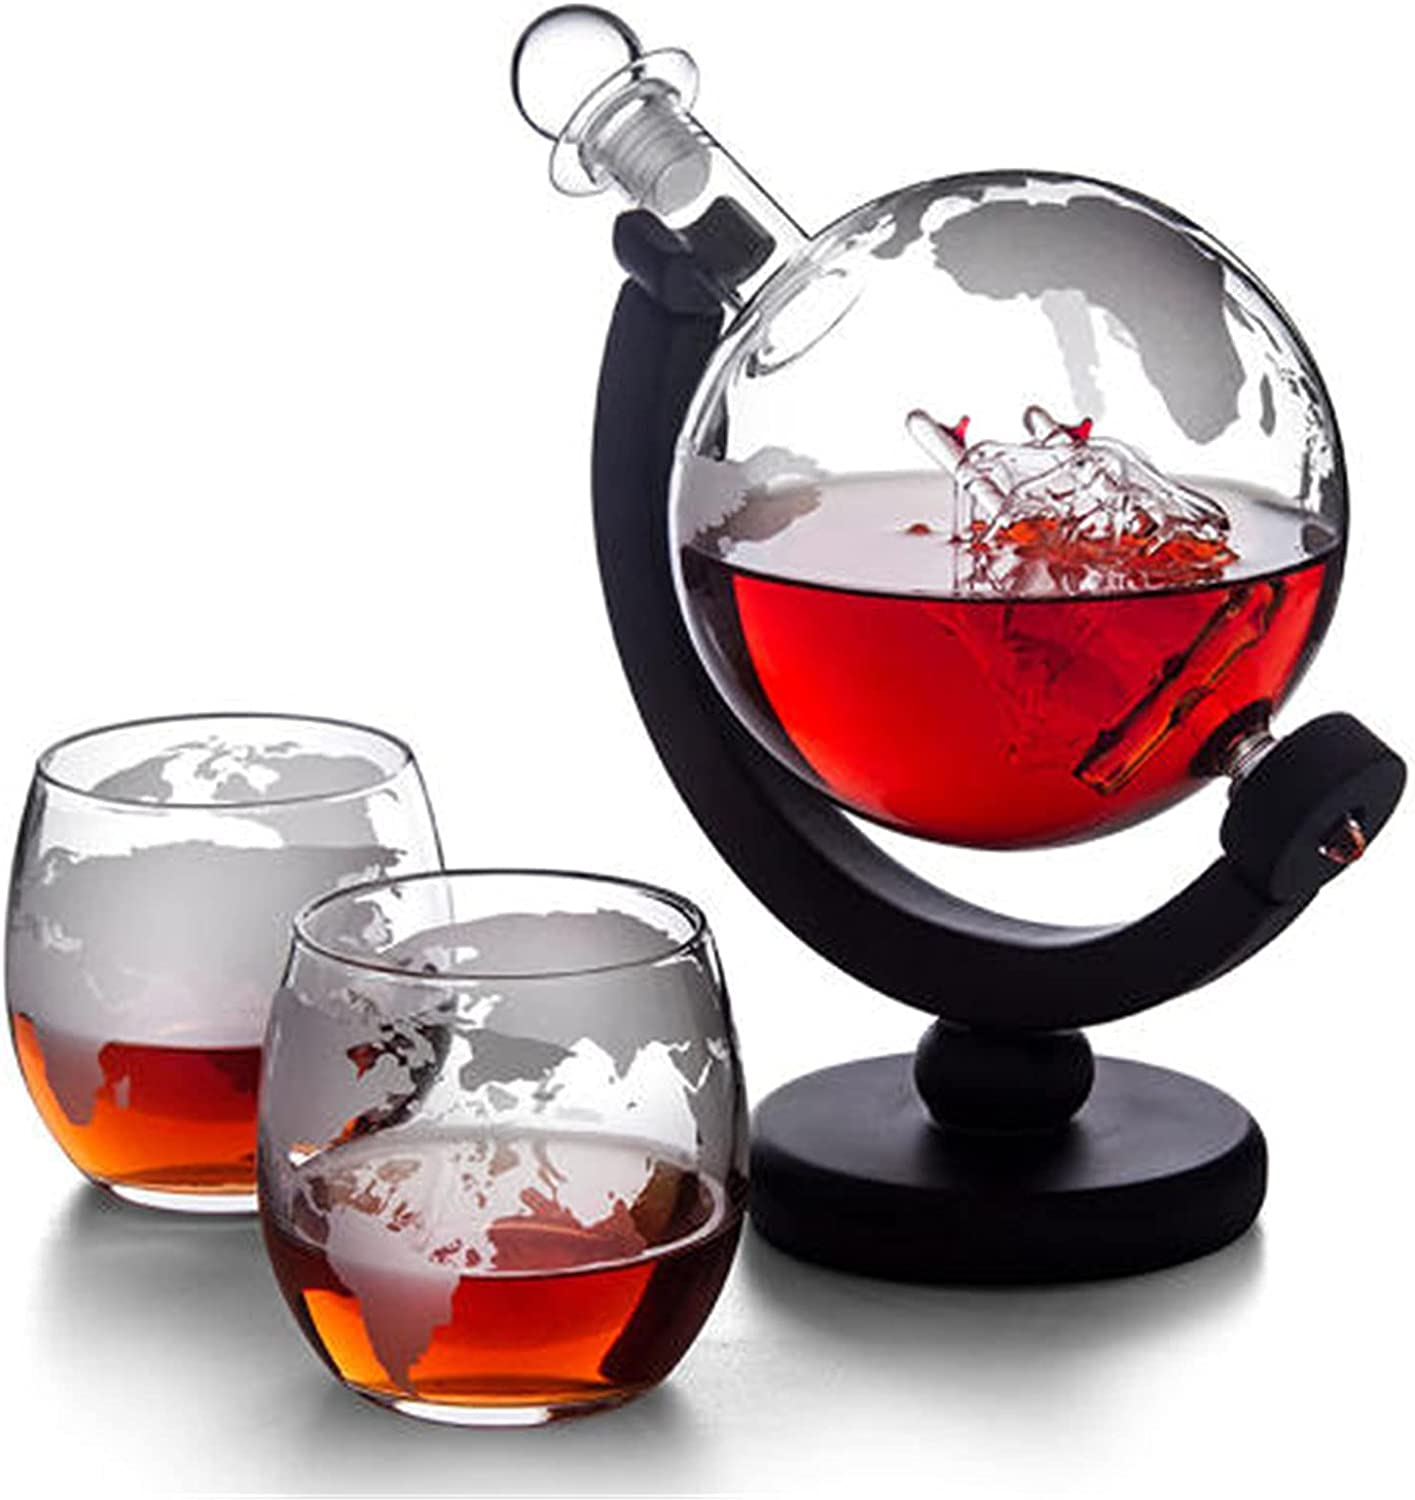 Anoauit 67% Shipping included OFF of fixed price Glass Whisky Decanter Set Globe - with 850ml Gl